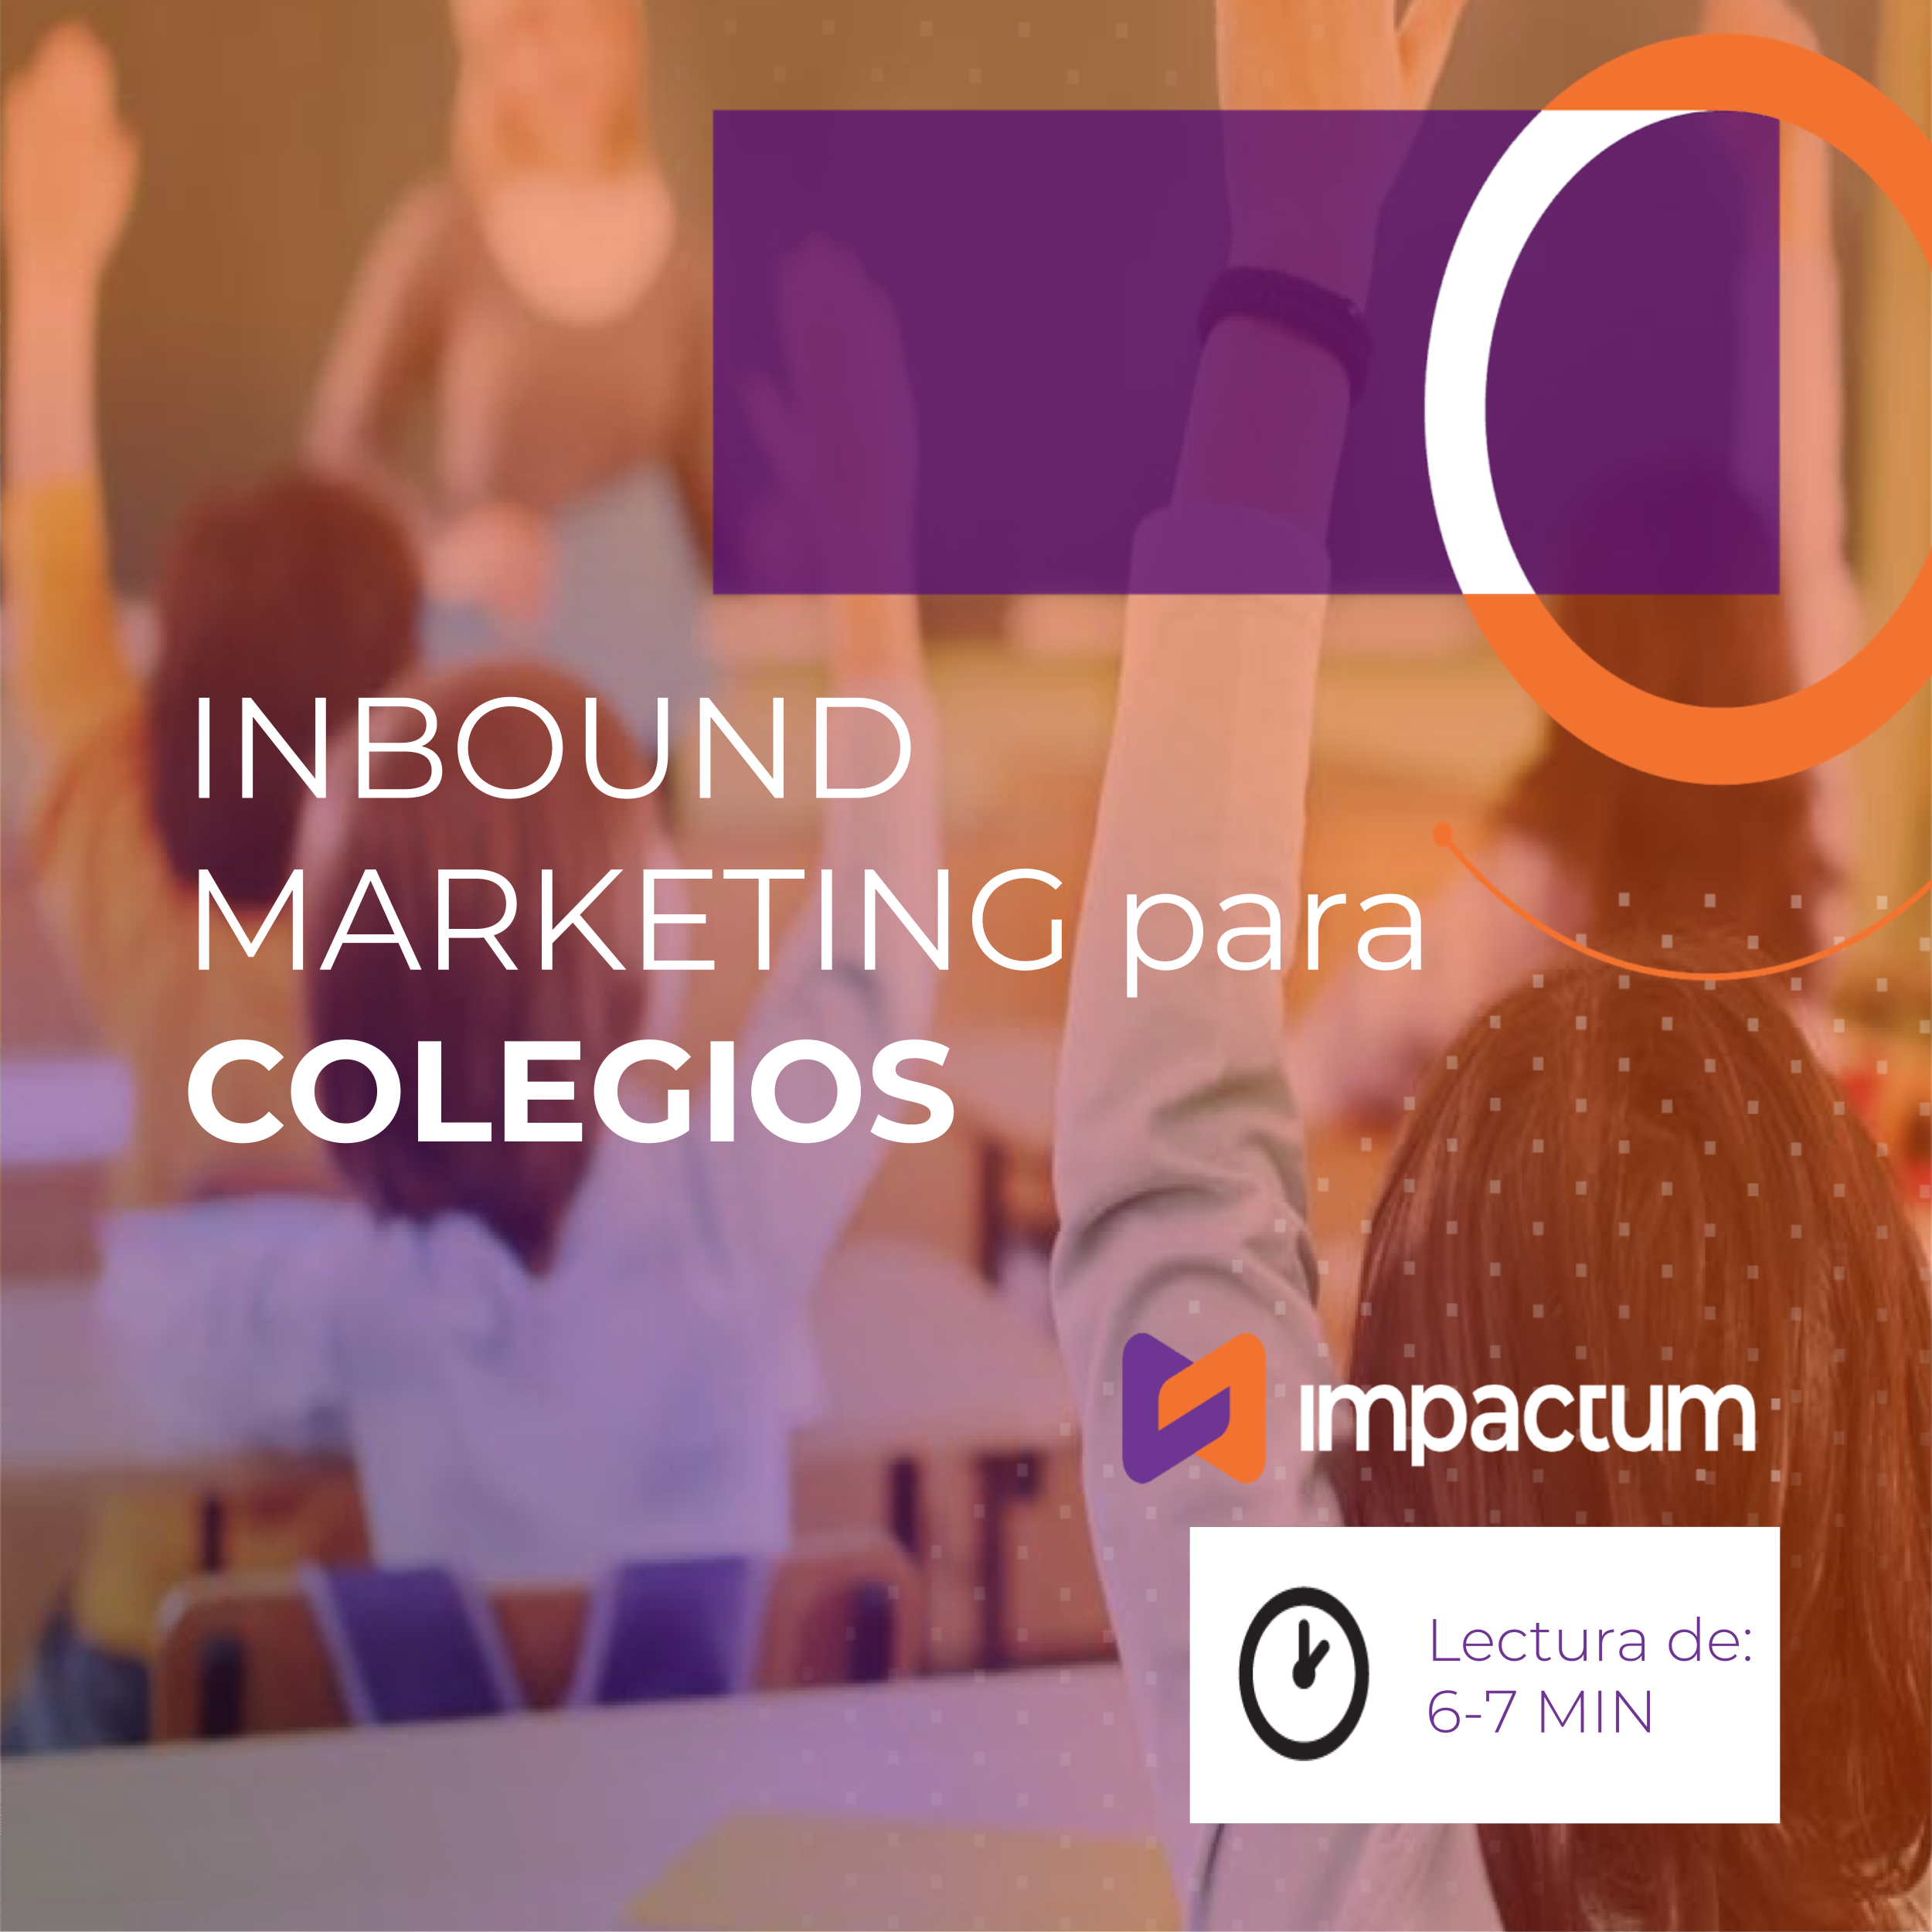 Inbound Marketing para colegios